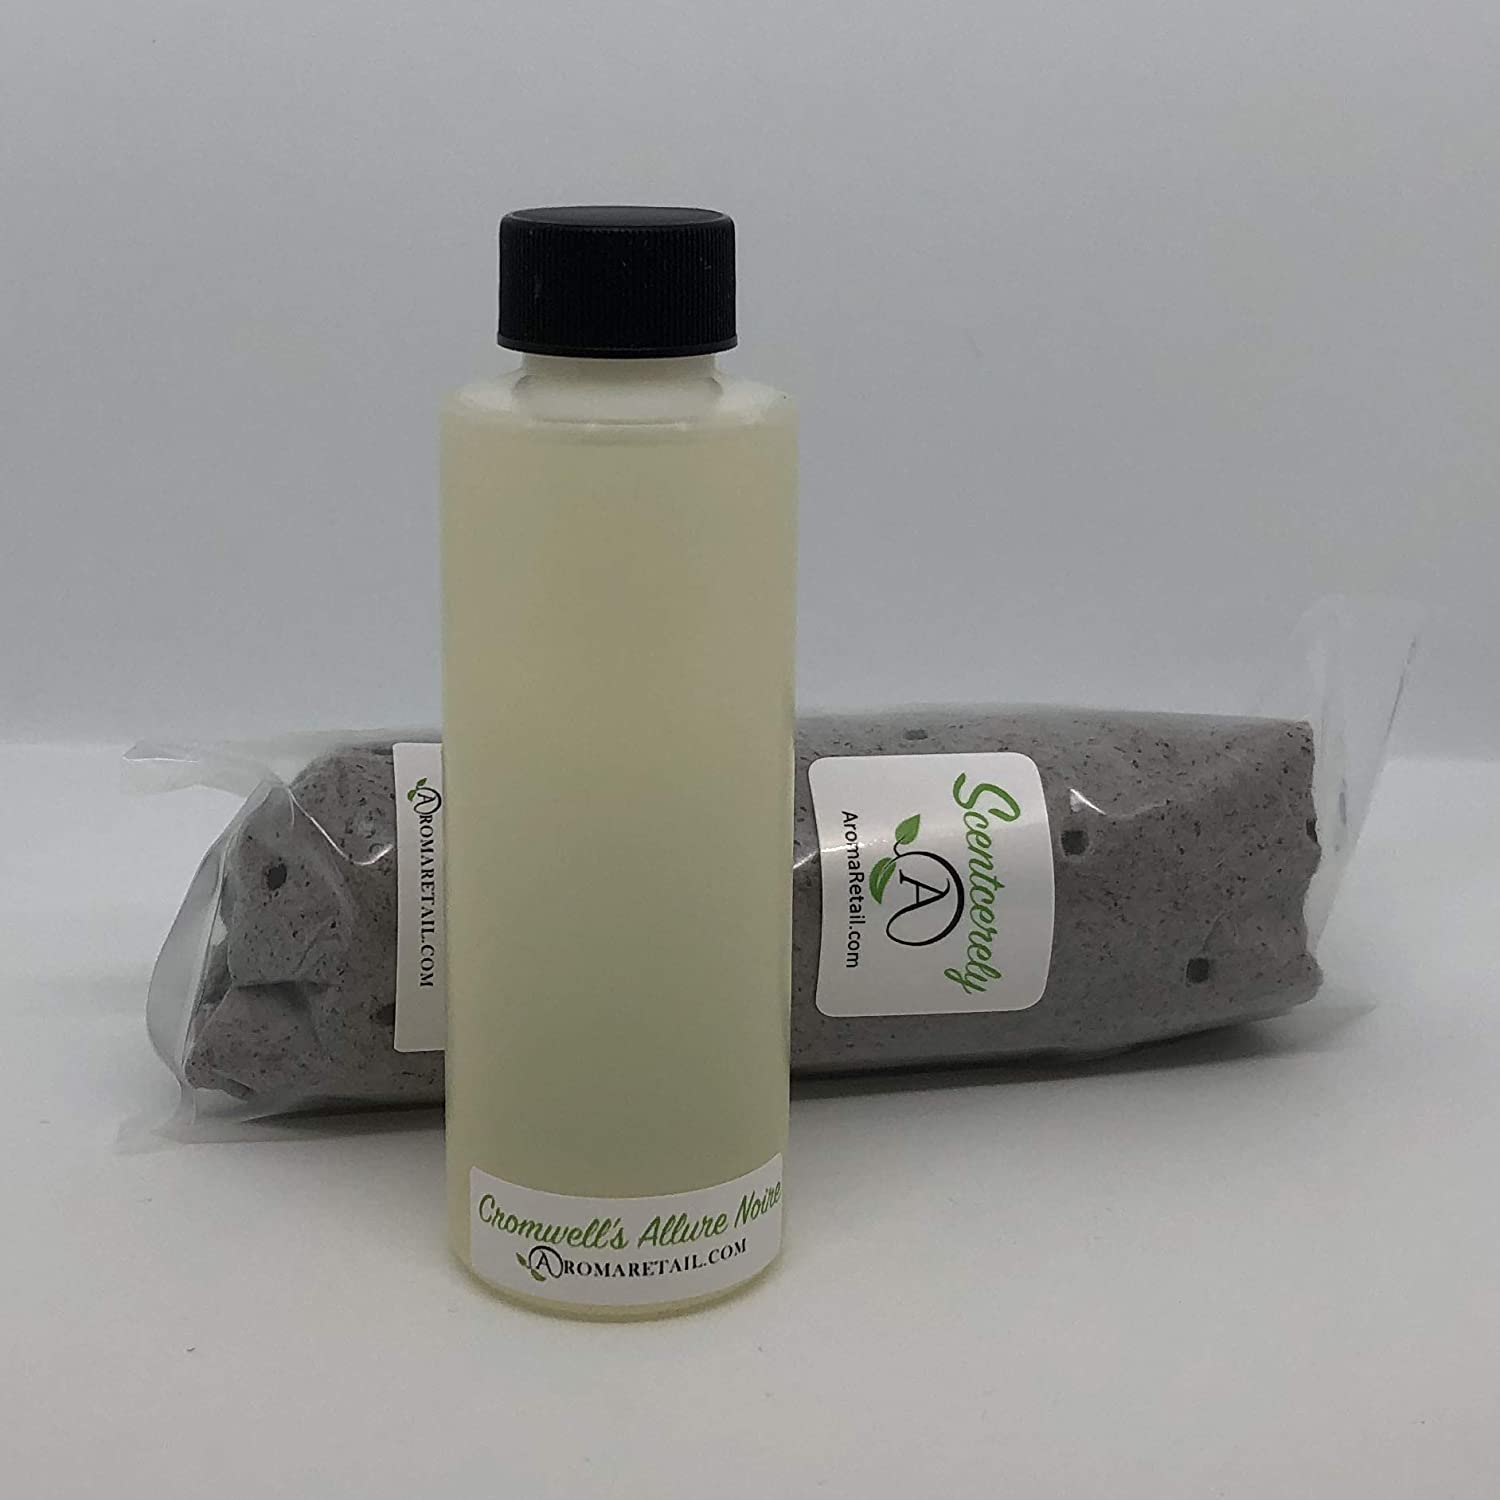 Scentcerely - Aroma Retail 4 oz Fragrance Oil Refill - Allure Noire, Experienced at Cromwell Hotel Las Vegas